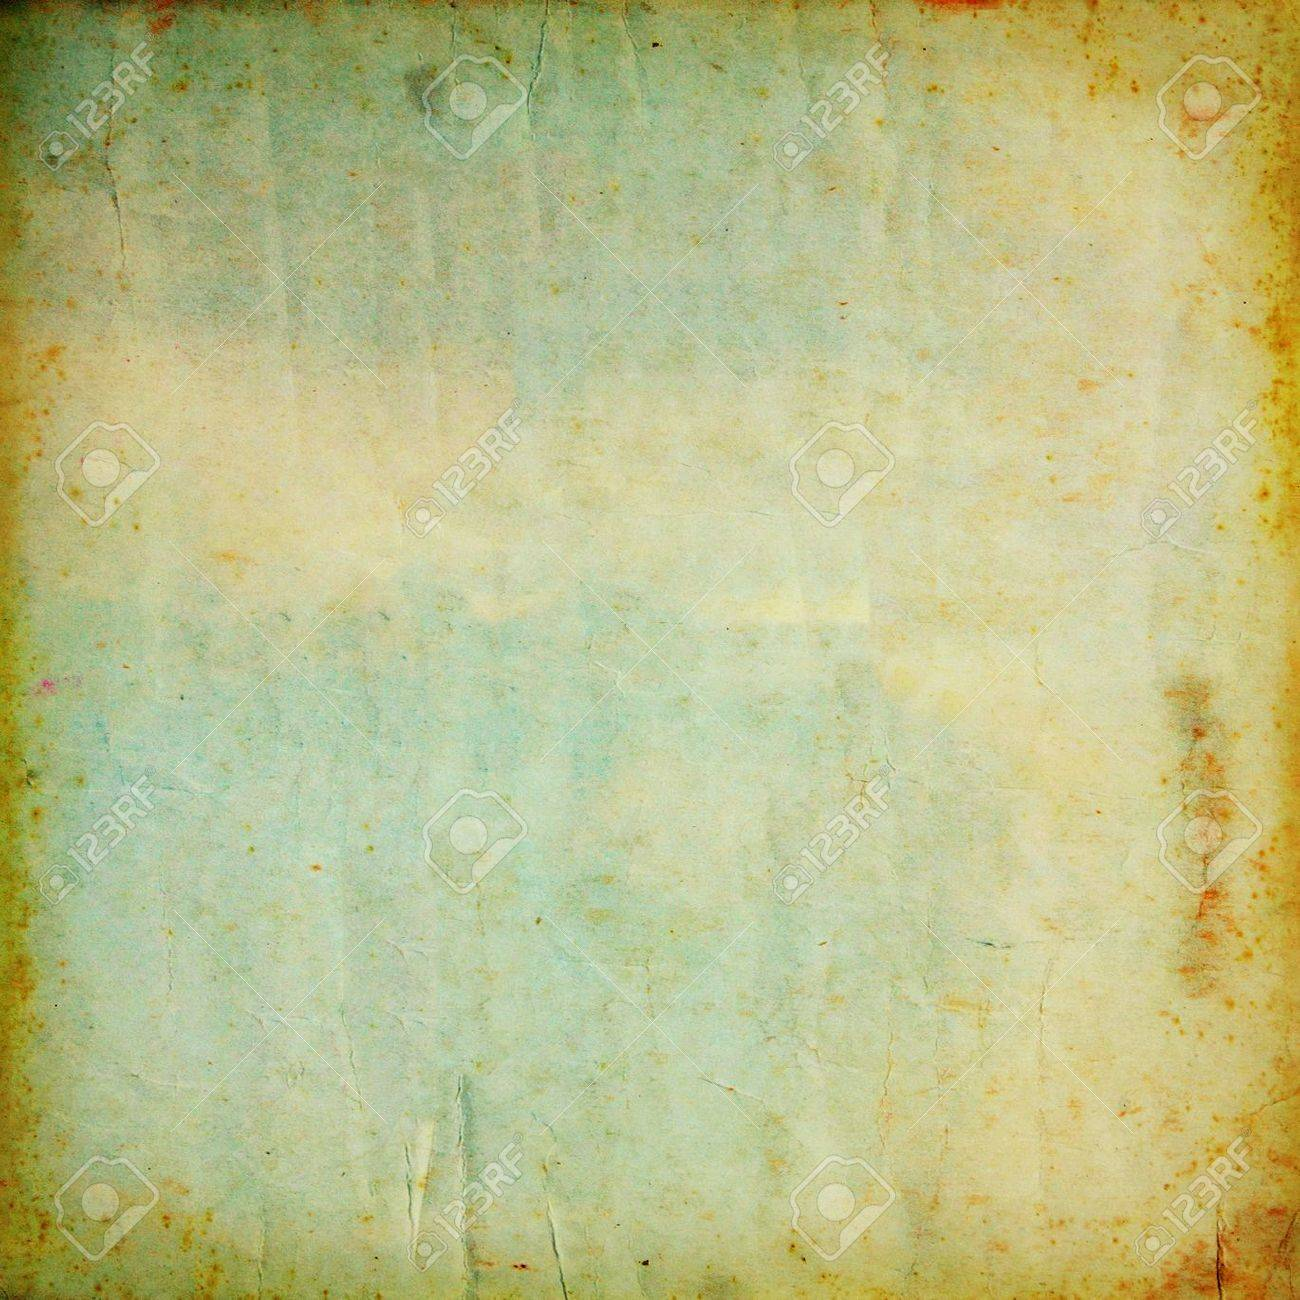 Vintage old grunge paper texture for background Stock Photo - 11802509